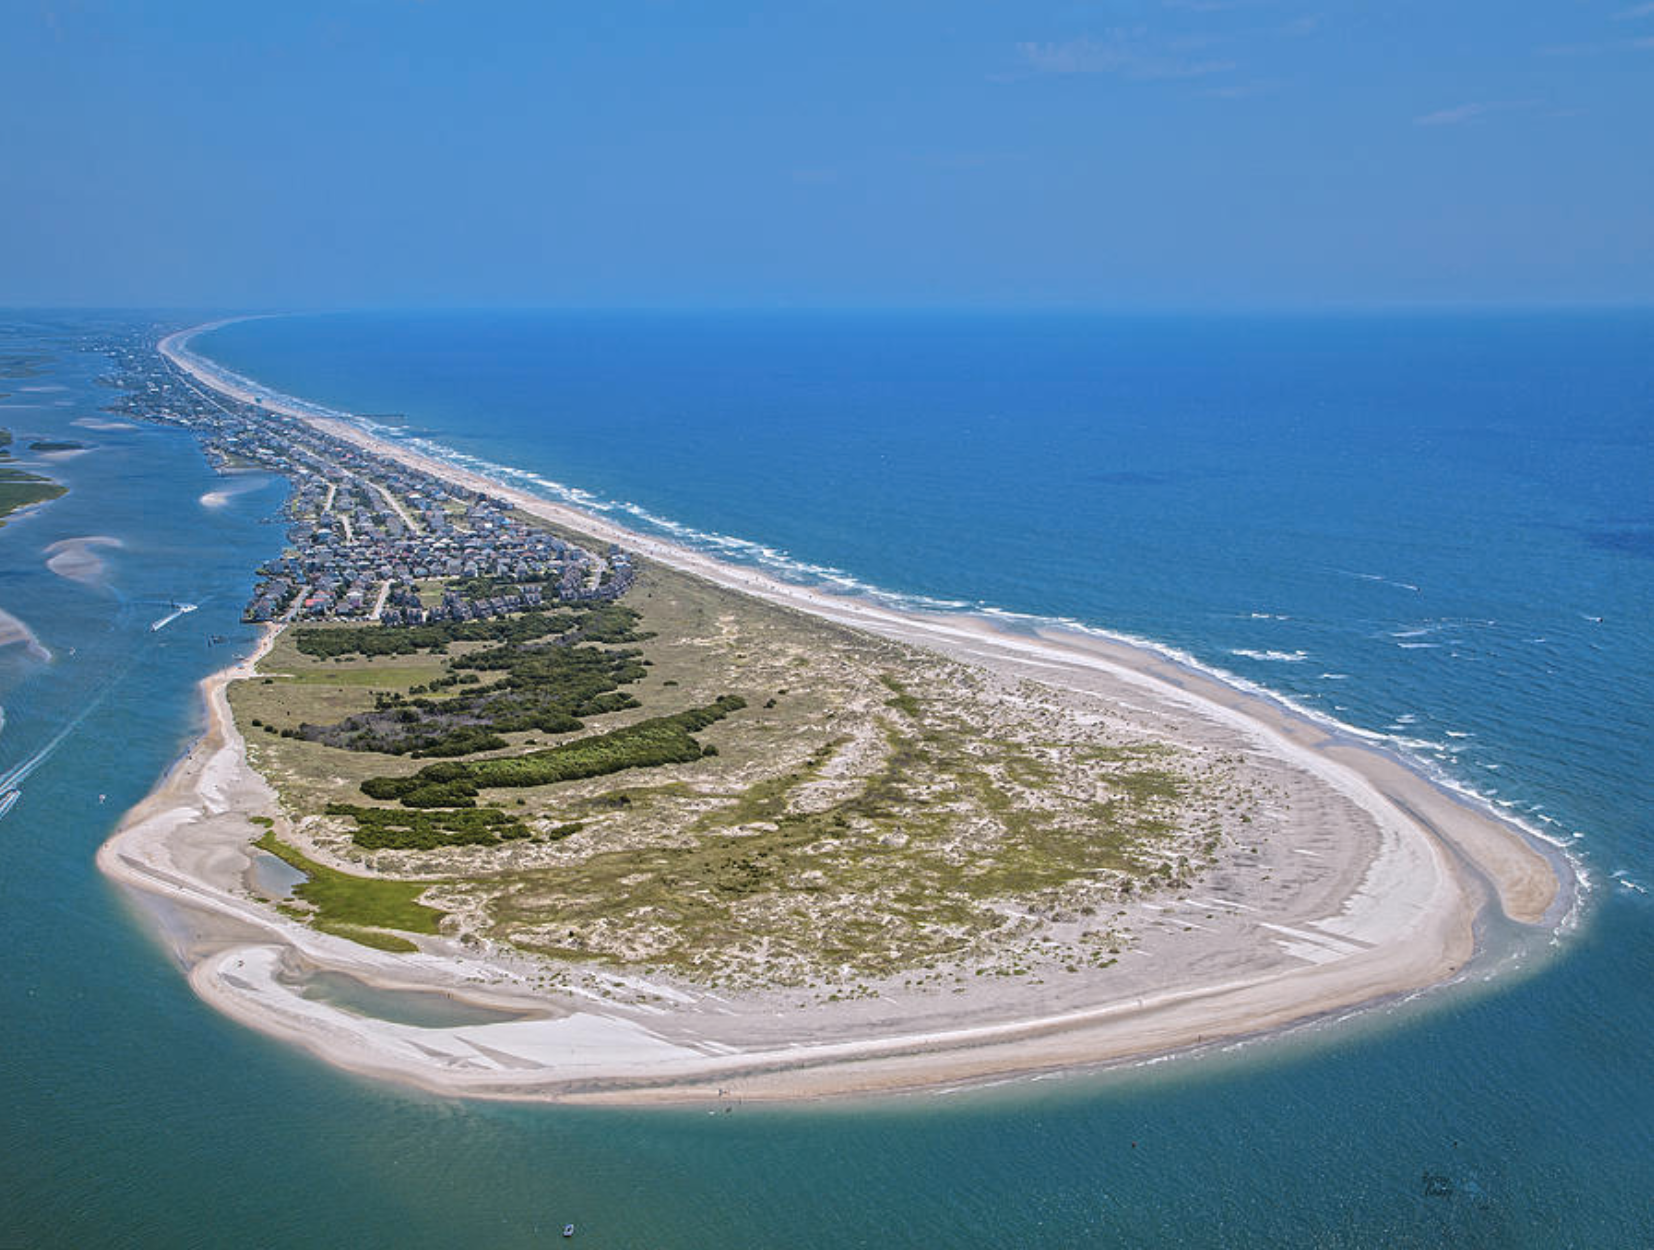 No attempt to protect 110 acres of open land on Topsail ... on map of ocean sands nc, map of nc beaches, caswell island nc, map of emerald isle nc, north topsail beach nc, map of historic downtown wilmington nc, map of quebec city, canada, map of long beach nc, map of surf city nc, north carolina map nc, map of onslow beach nc, map of lake hiwassee nc, map of porters neck nc, map of ft fisher nc, map of north topsail island beach, map of brunswick island nc, showing map of topsail beach nc, map of richlands nc, map of harbor island nc, tip of topsail beach nc,